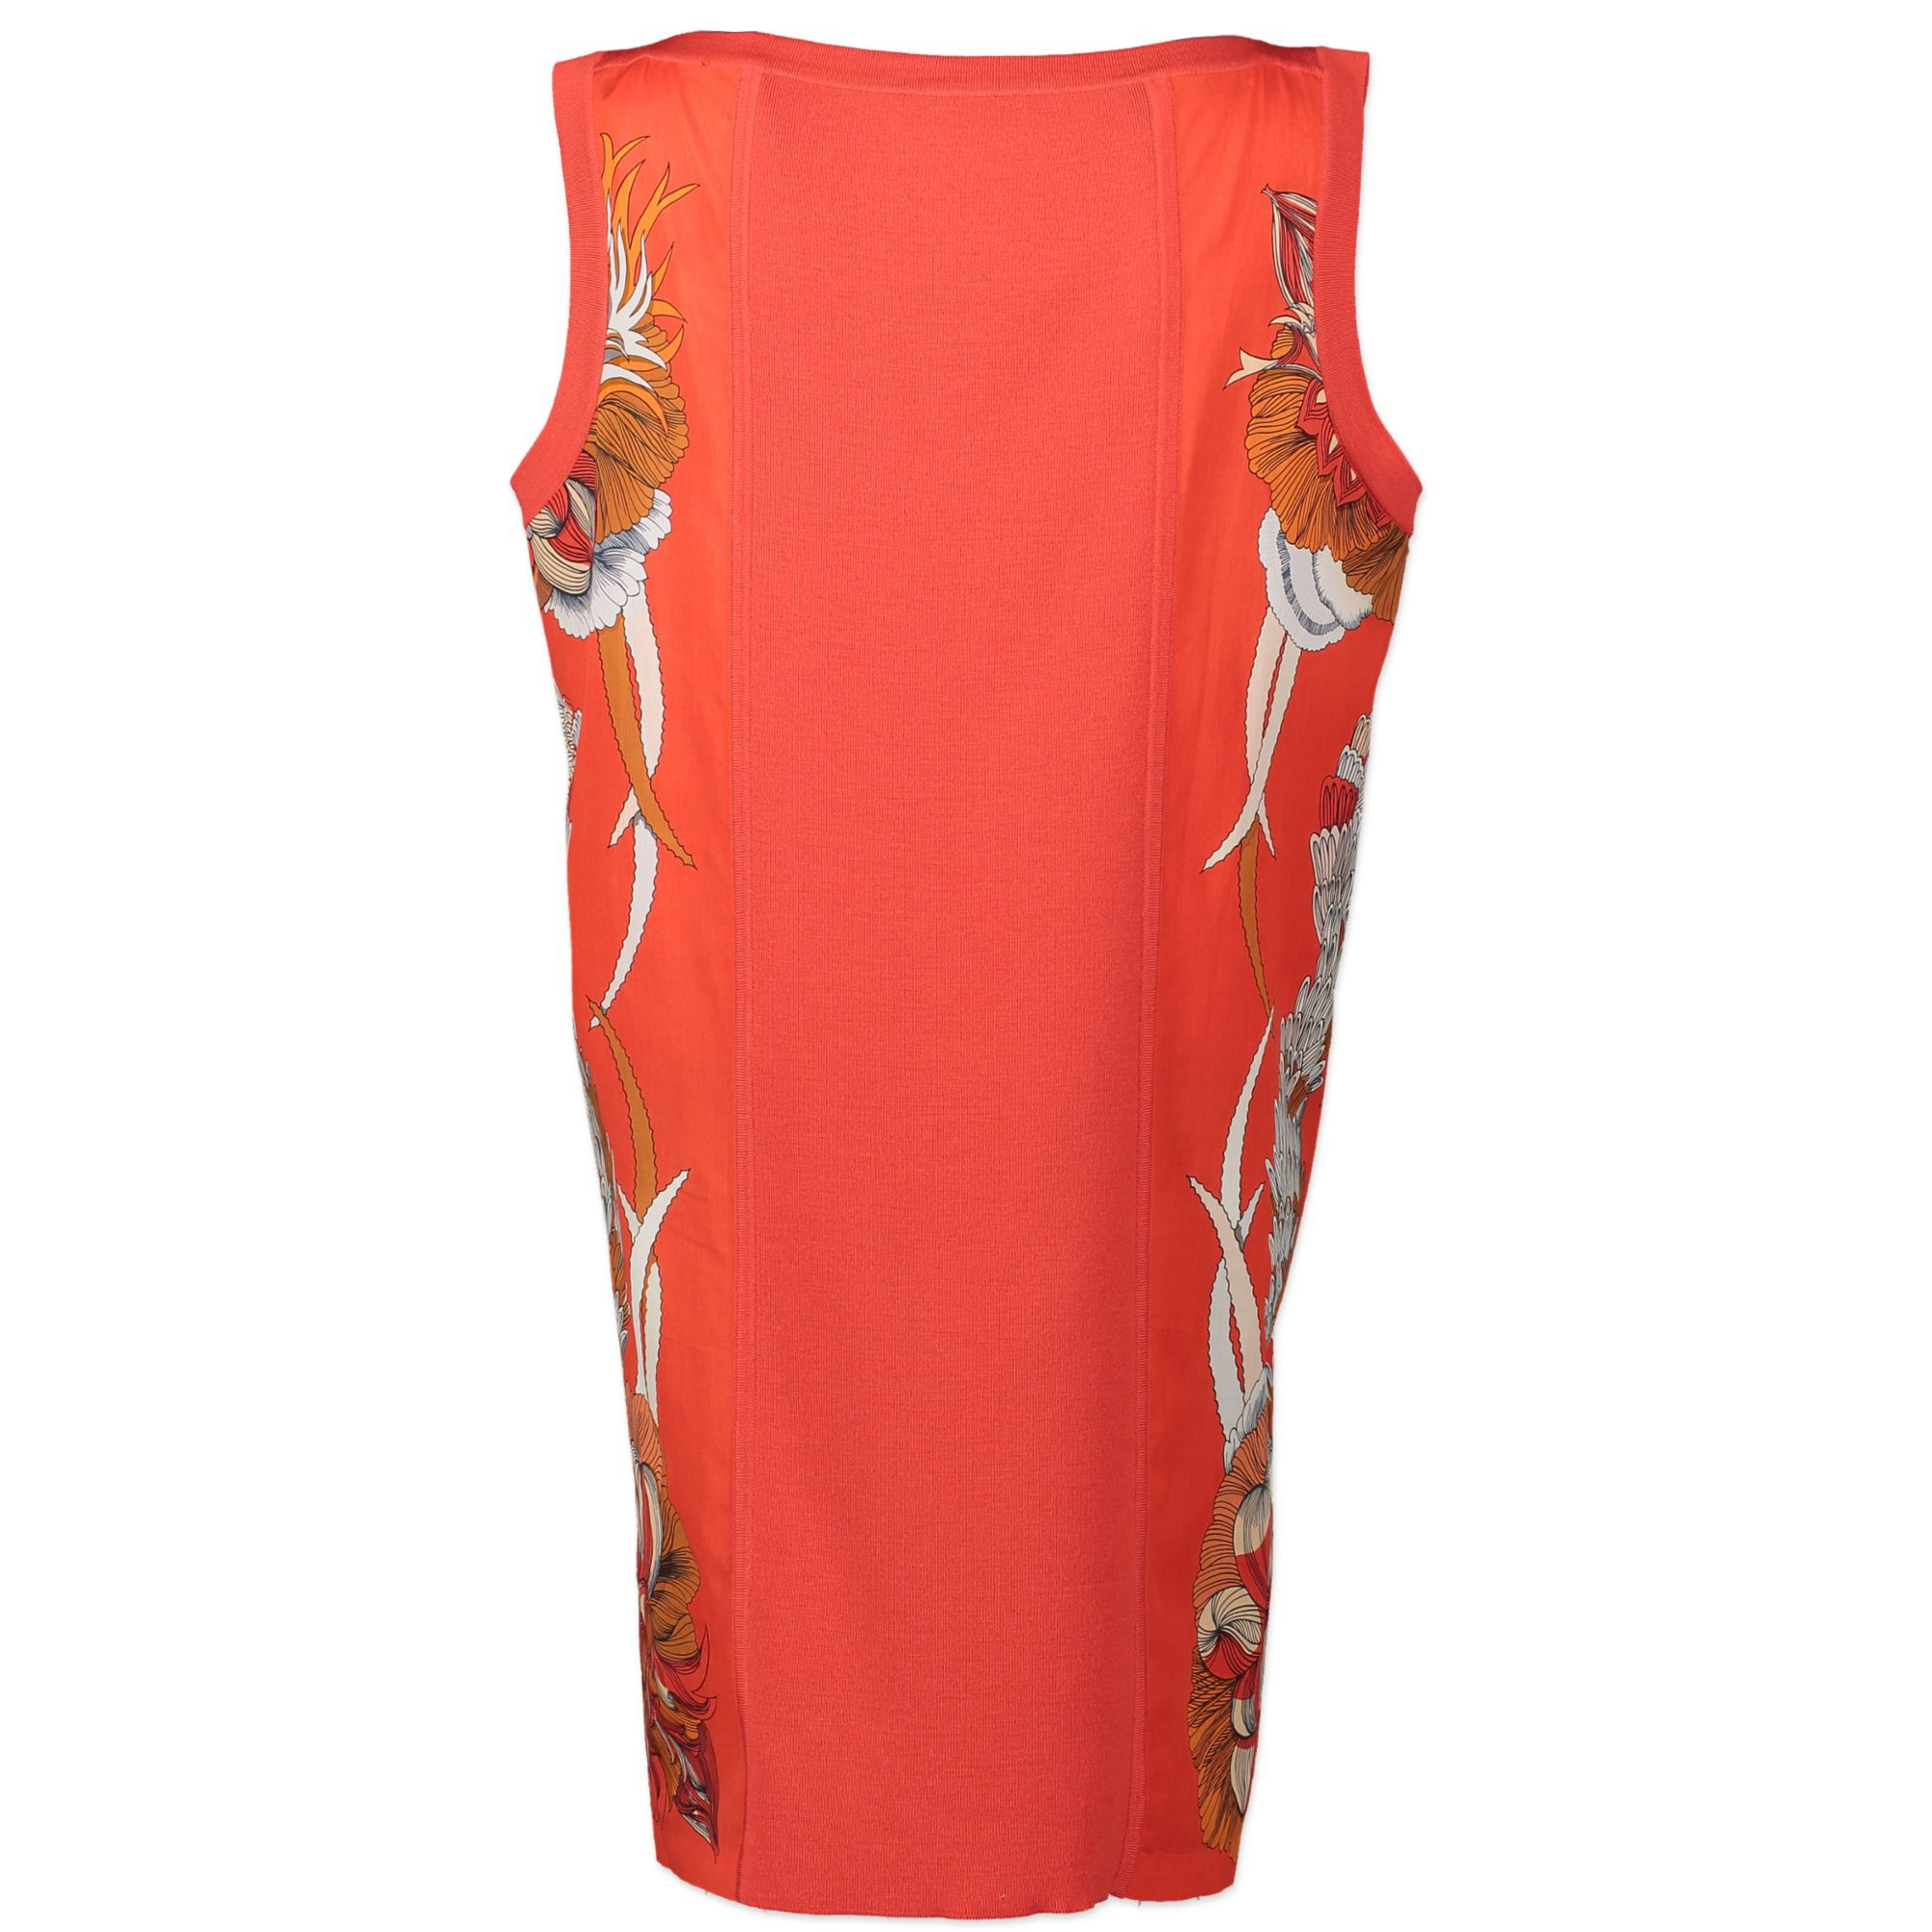 Hermès Red Printed Dress - Size 42